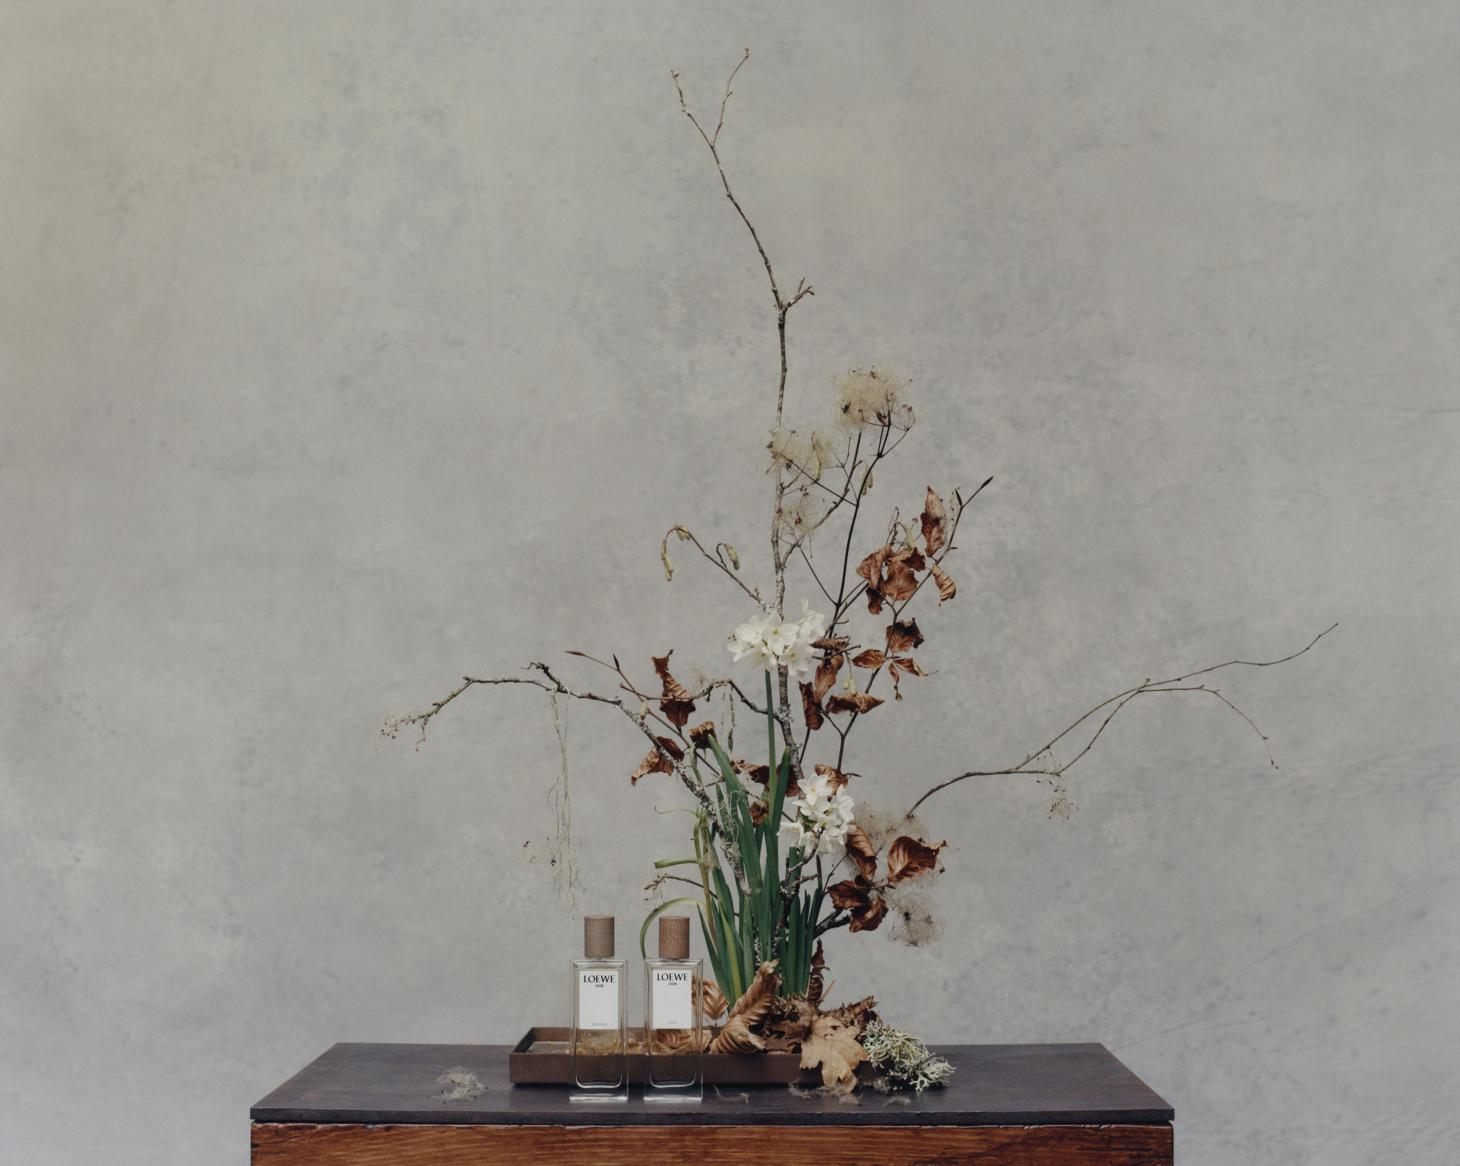 tyler mitchell photograph of loewe perfumes next to flower arrangement against light blue background